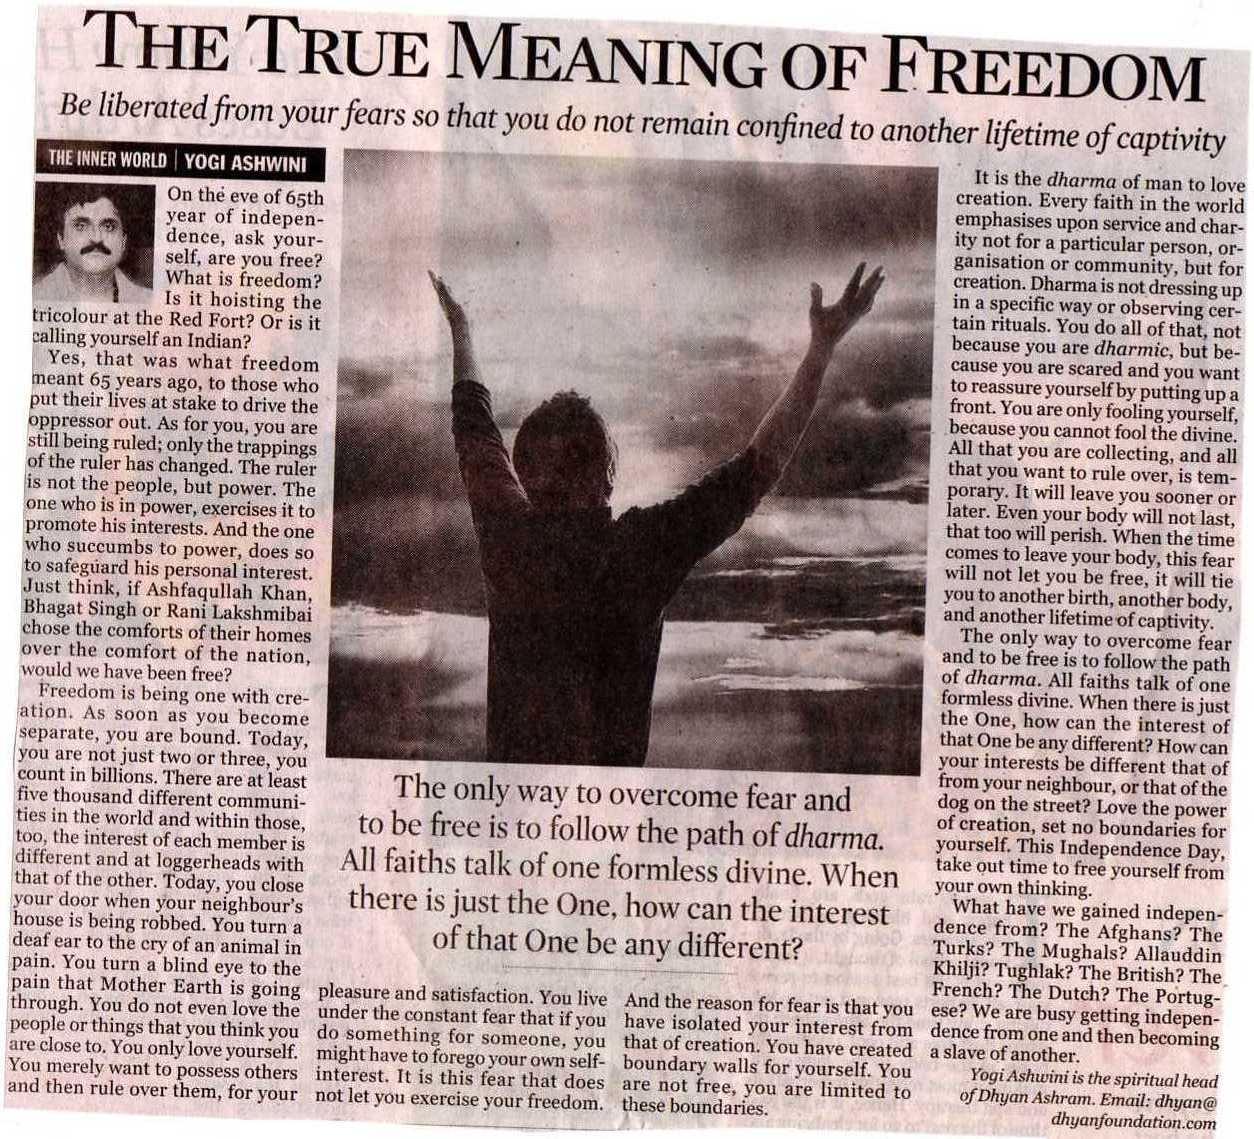 real meaning of freedom This is how god addressed himself to moshe when promising to redeem the jews from egyptian bondage this promise heralded their soon-to-be-achieved freedom.